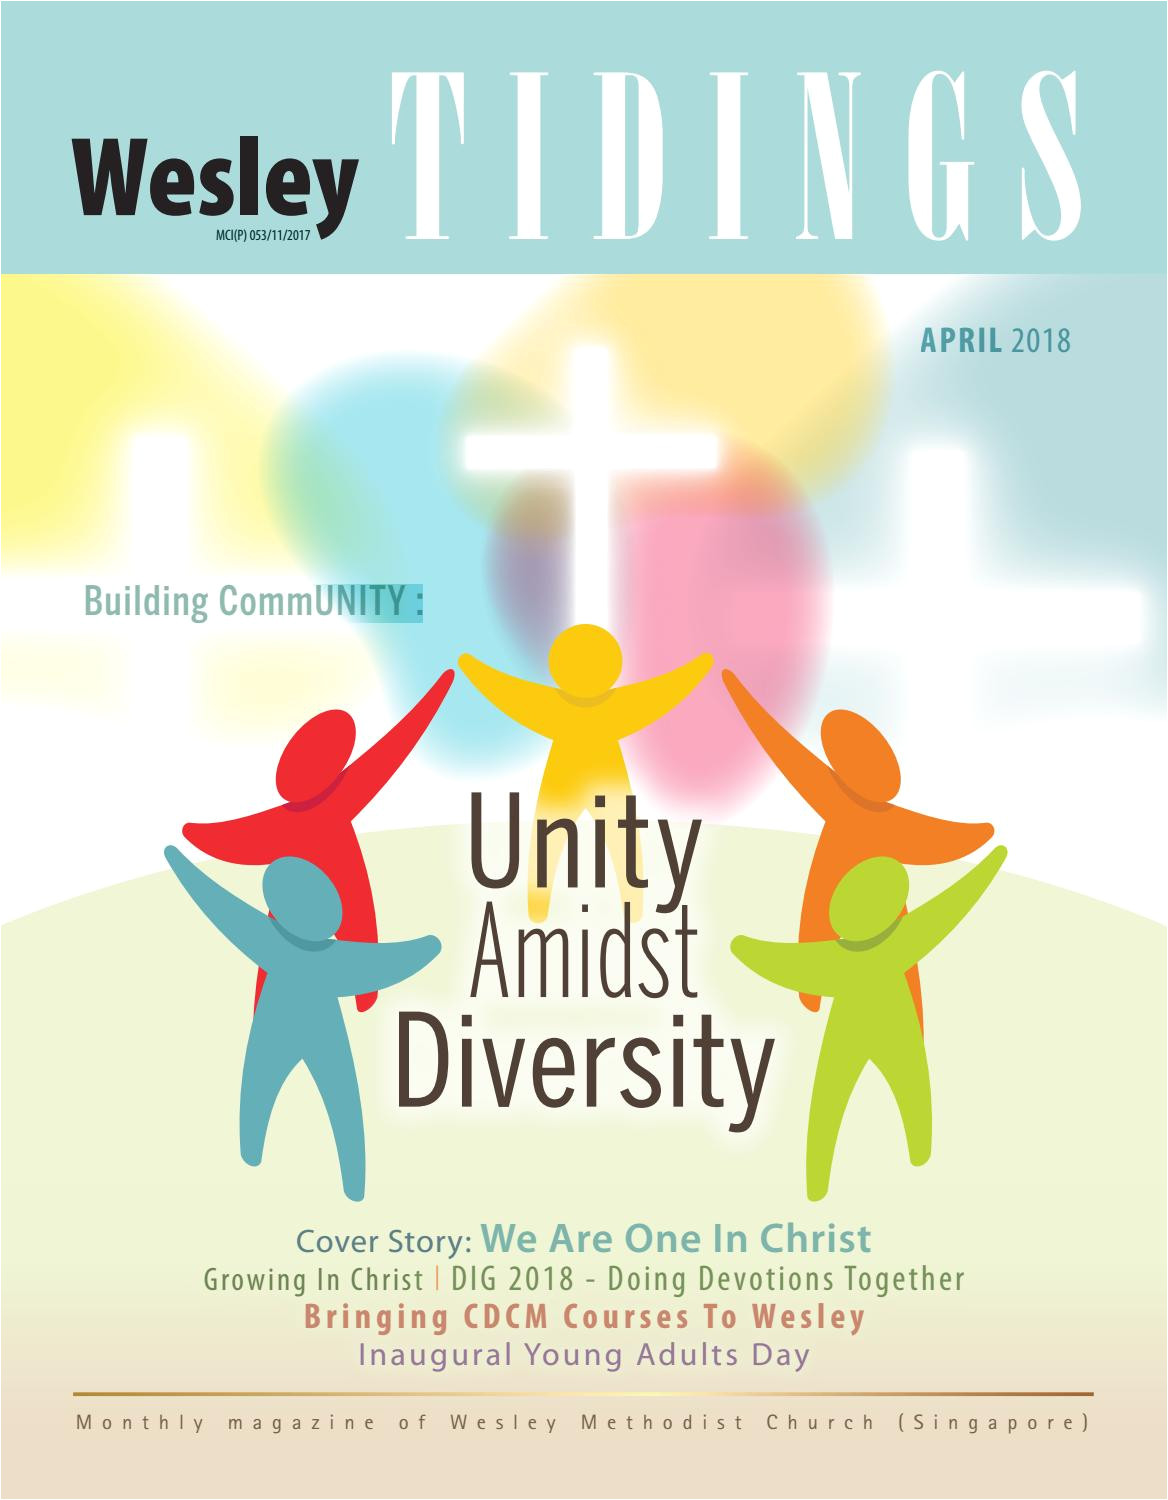 wesley tidings newsletter april 2018 by wesley methodist church singapore issuu